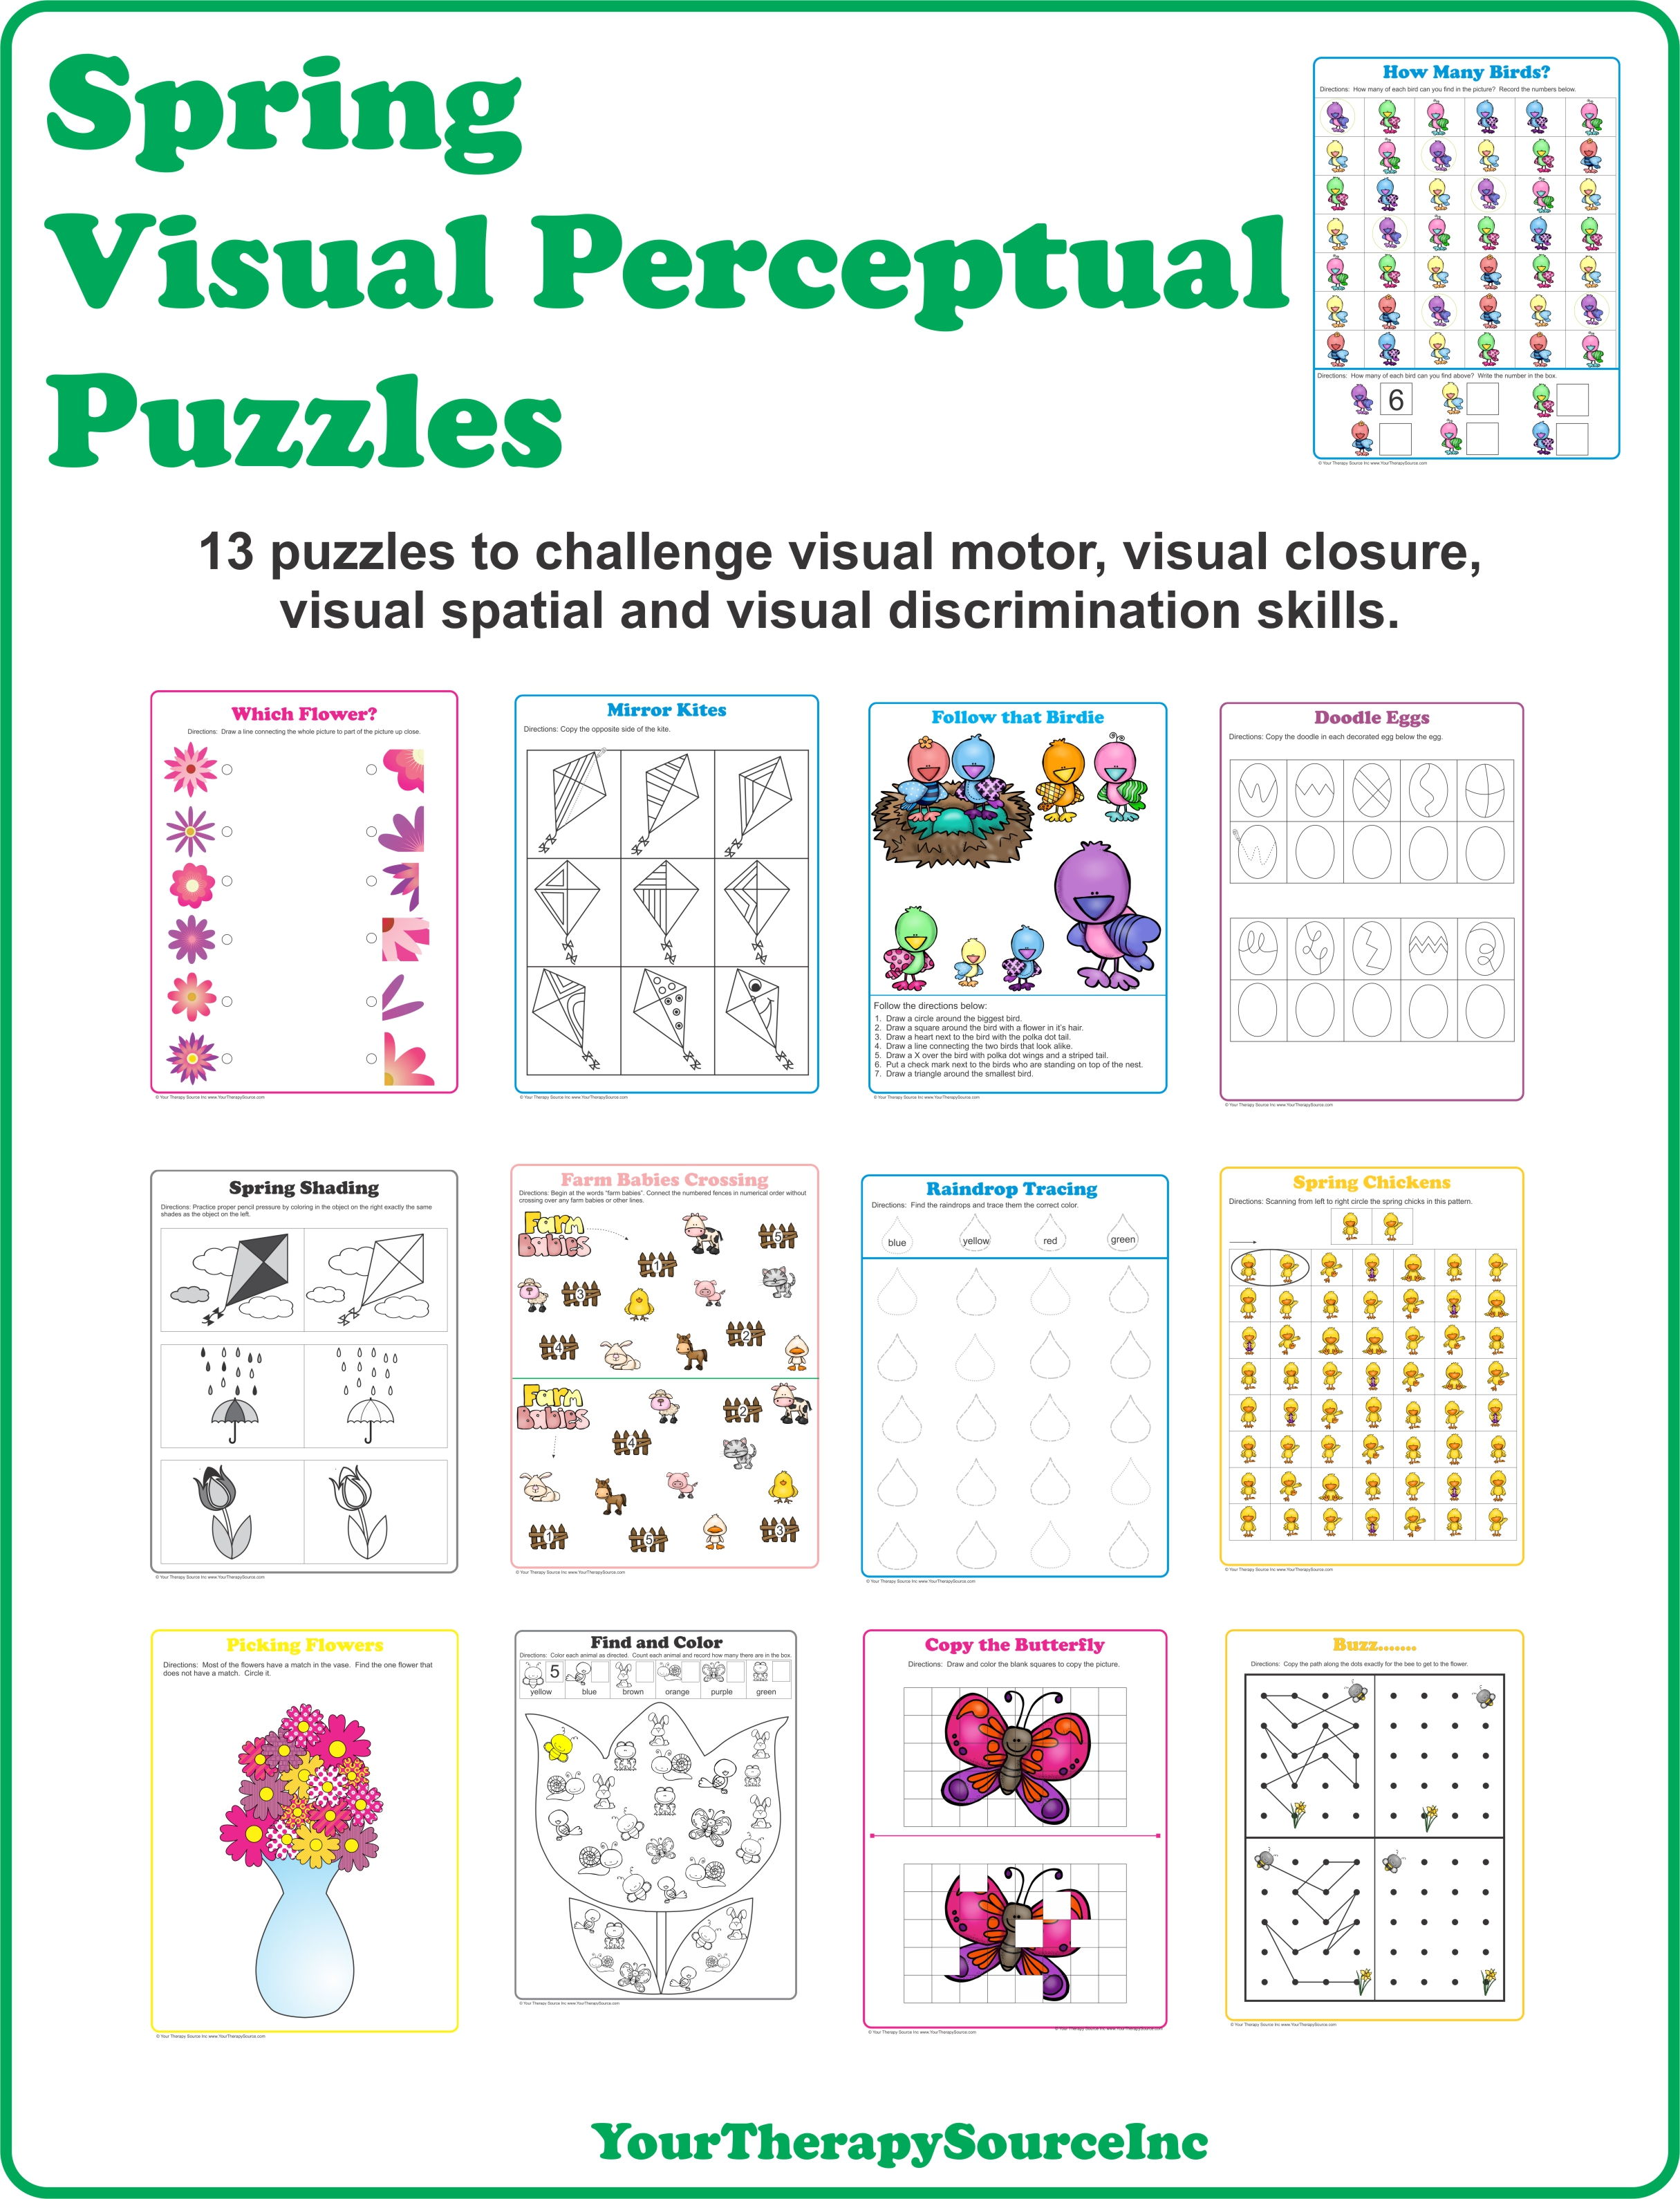 Spring Visual Perceptual Puzzles